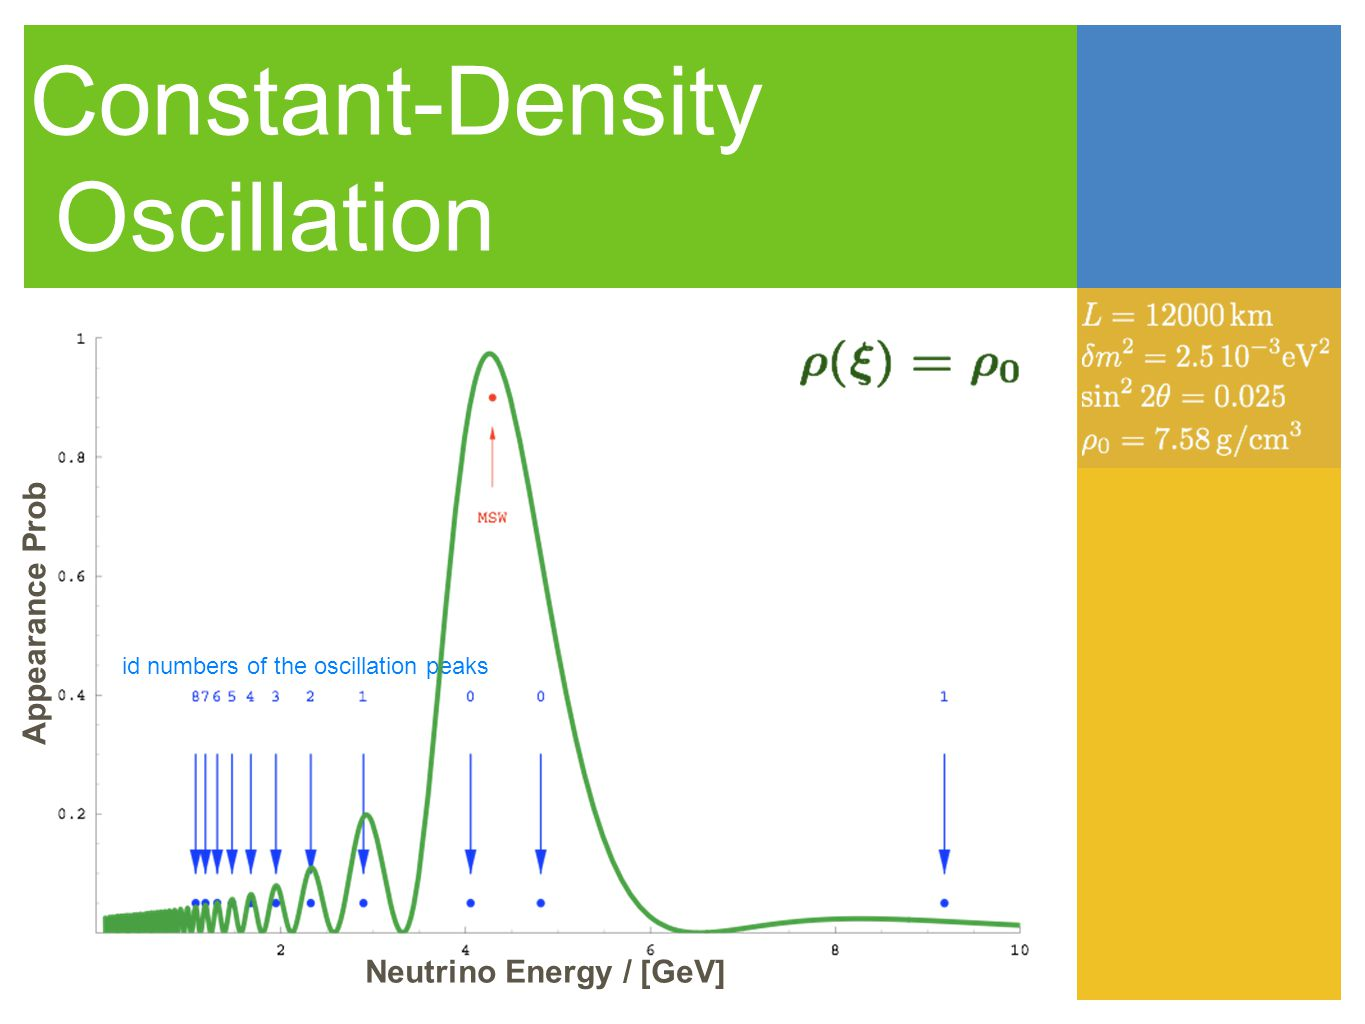 id numbers of the oscillation peaks Constant-Density Oscillation Neutrino Energy / [GeV] Appearance Prob